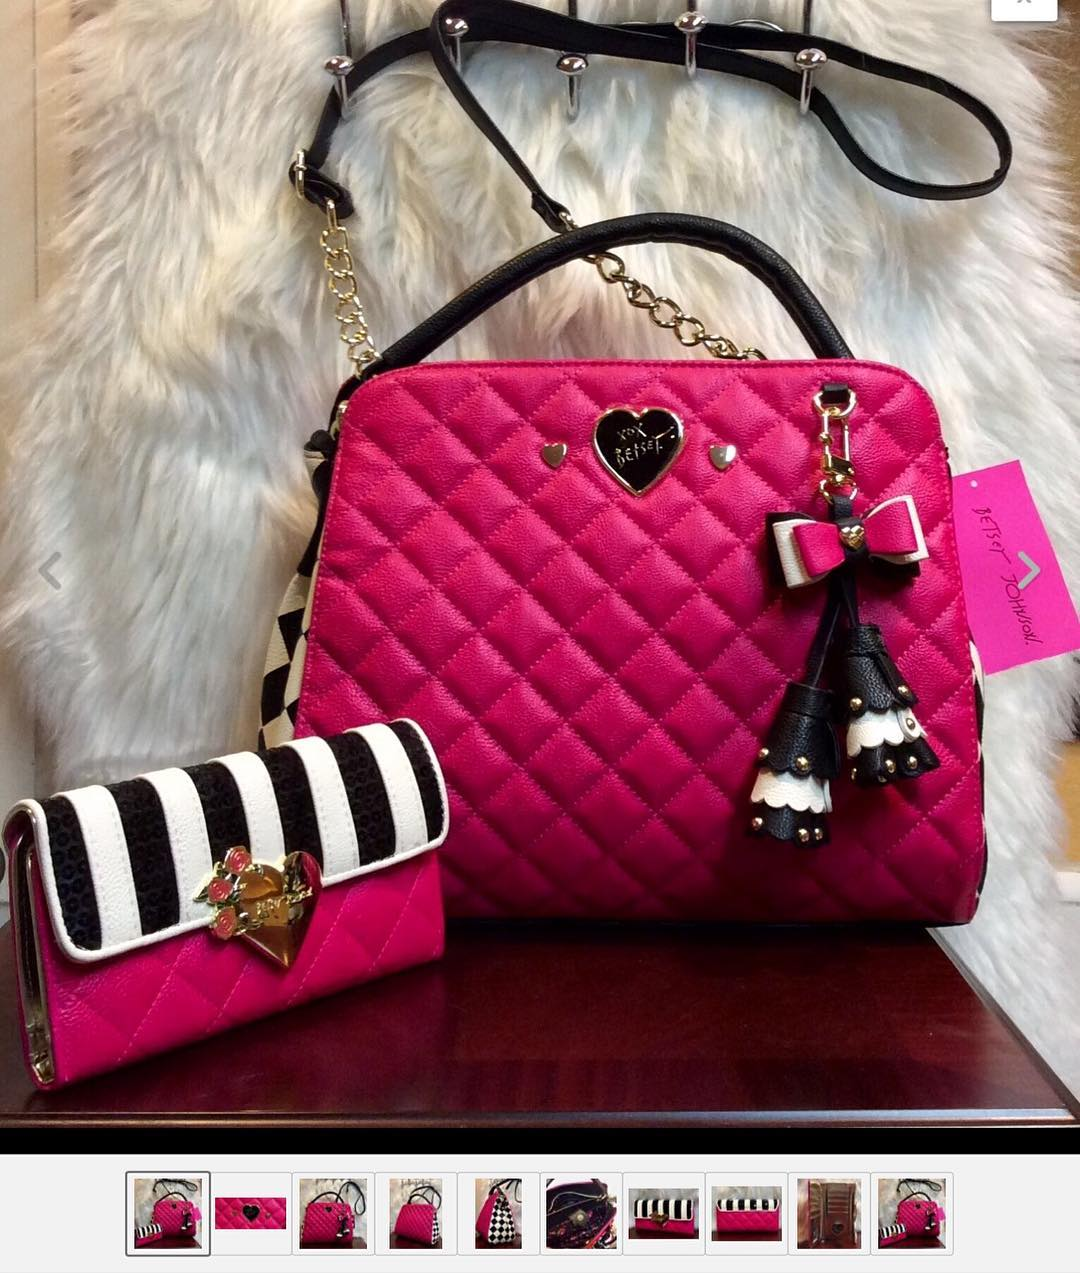 What's Your favorite Betsey Johnson Handbag?